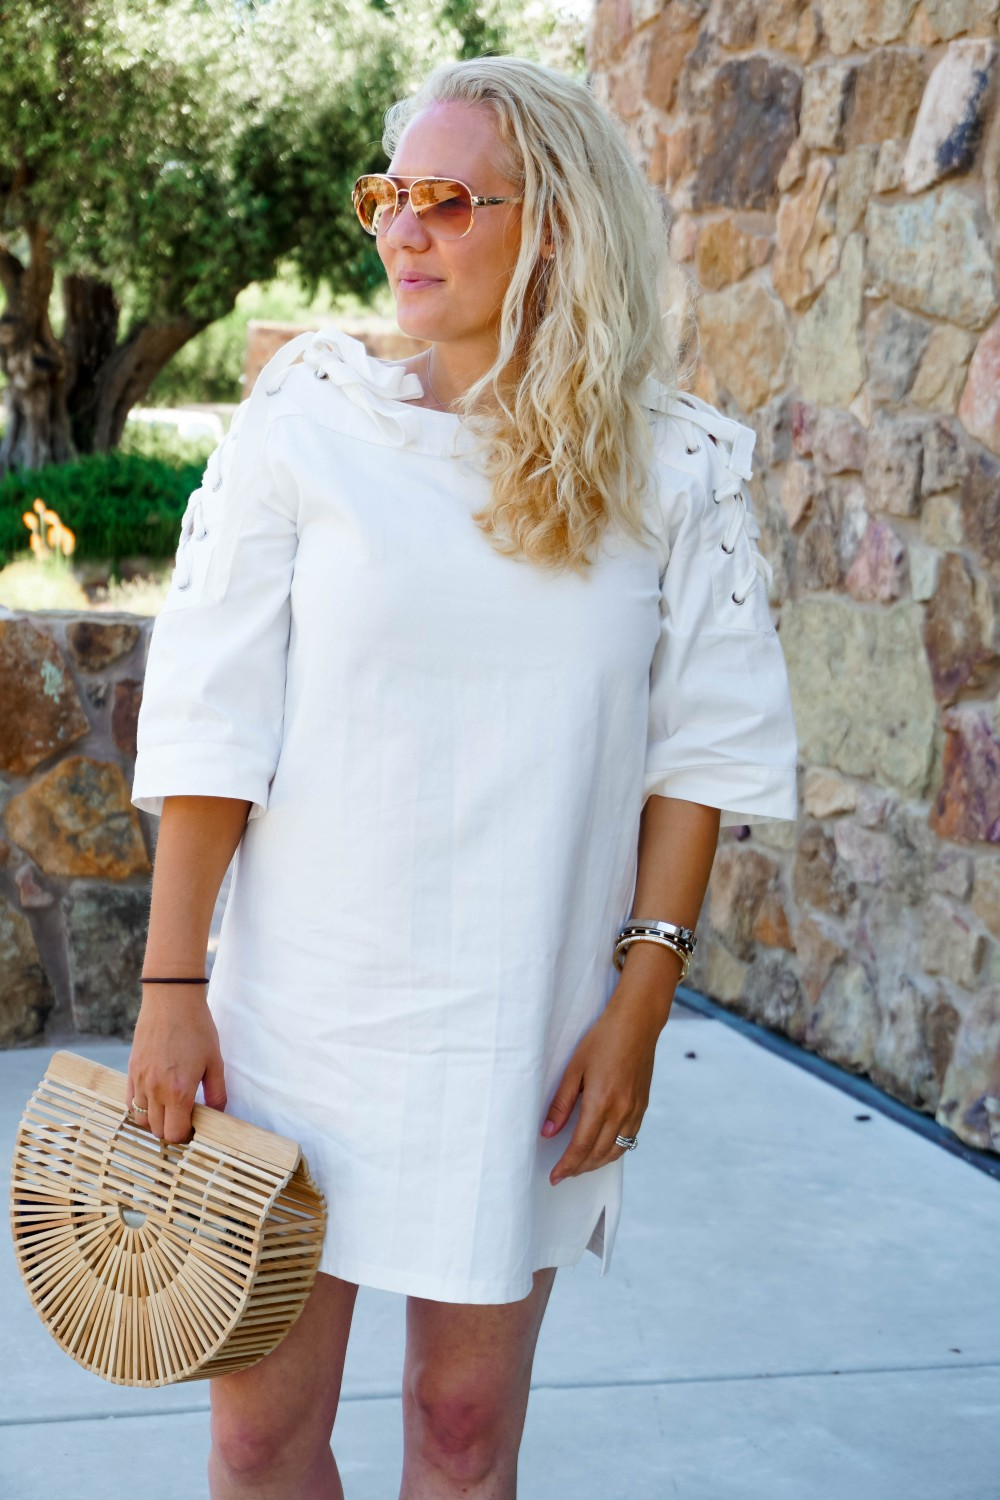 Lace-Up White Denim Dress-JOA Denim Dress-Summer Style-Bijou on the Park-Have Need Want-Outfit Inspiration-Mom Style 2